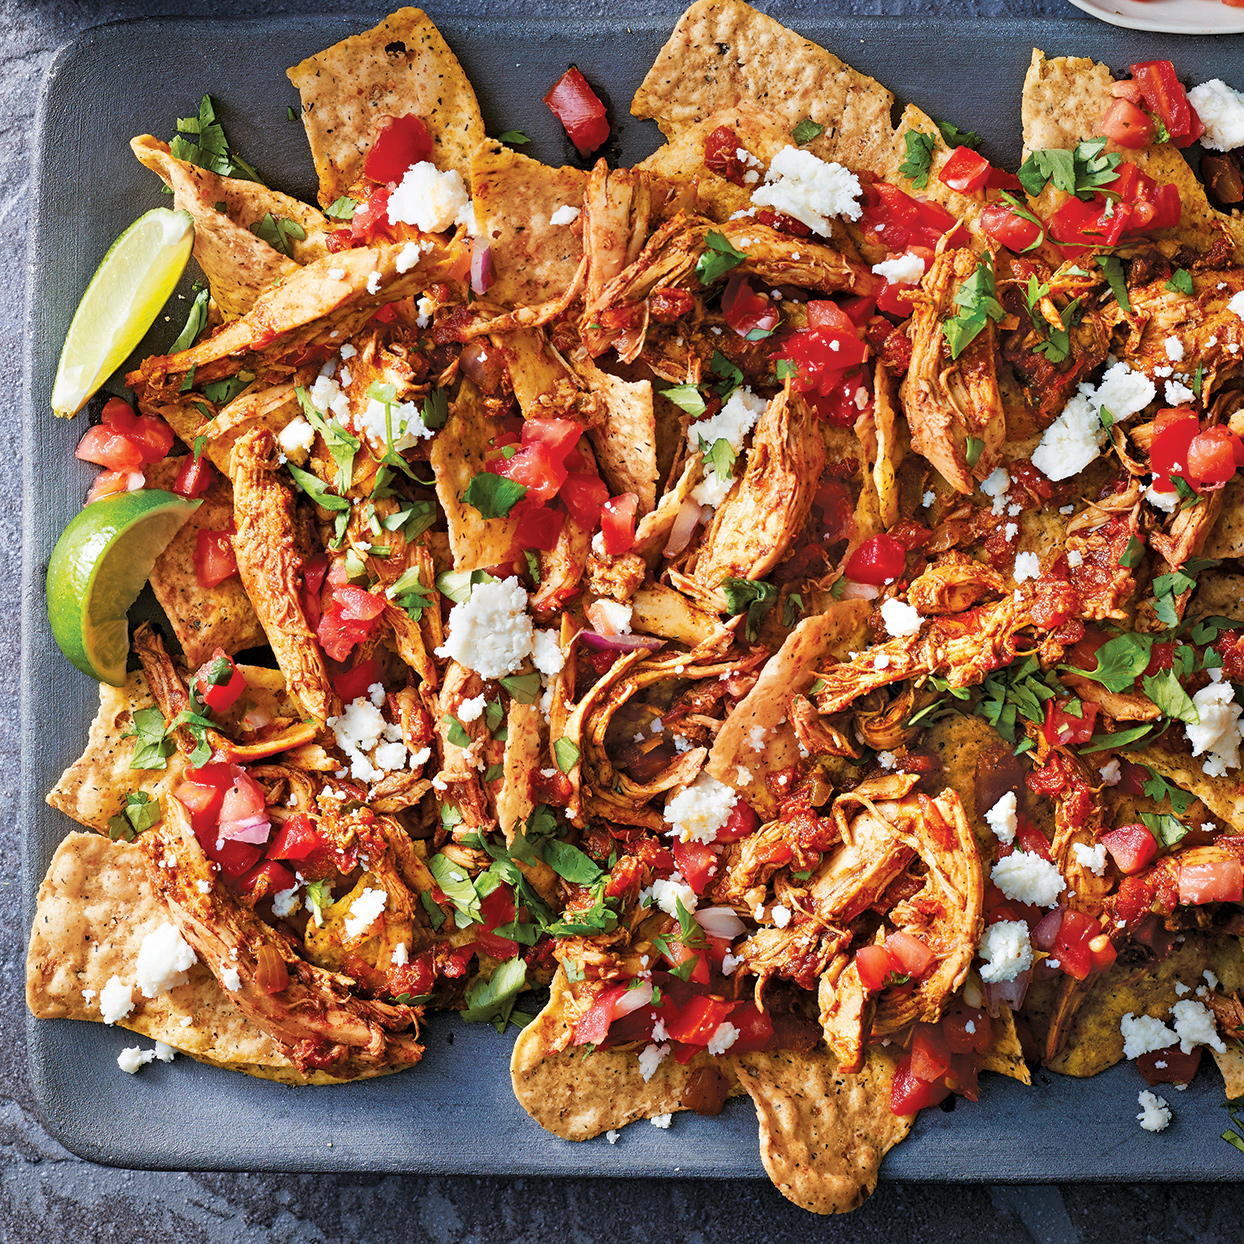 Host a cocktail party or game night and serve guests these tasty slow-cooker turkey nachos. The turkey picks up smoky flavor from the chili powder and cumin, and the chips and toppings give the dish varied textures. Serve with margaritas or cold beer and fresh lime wedges, if desired.